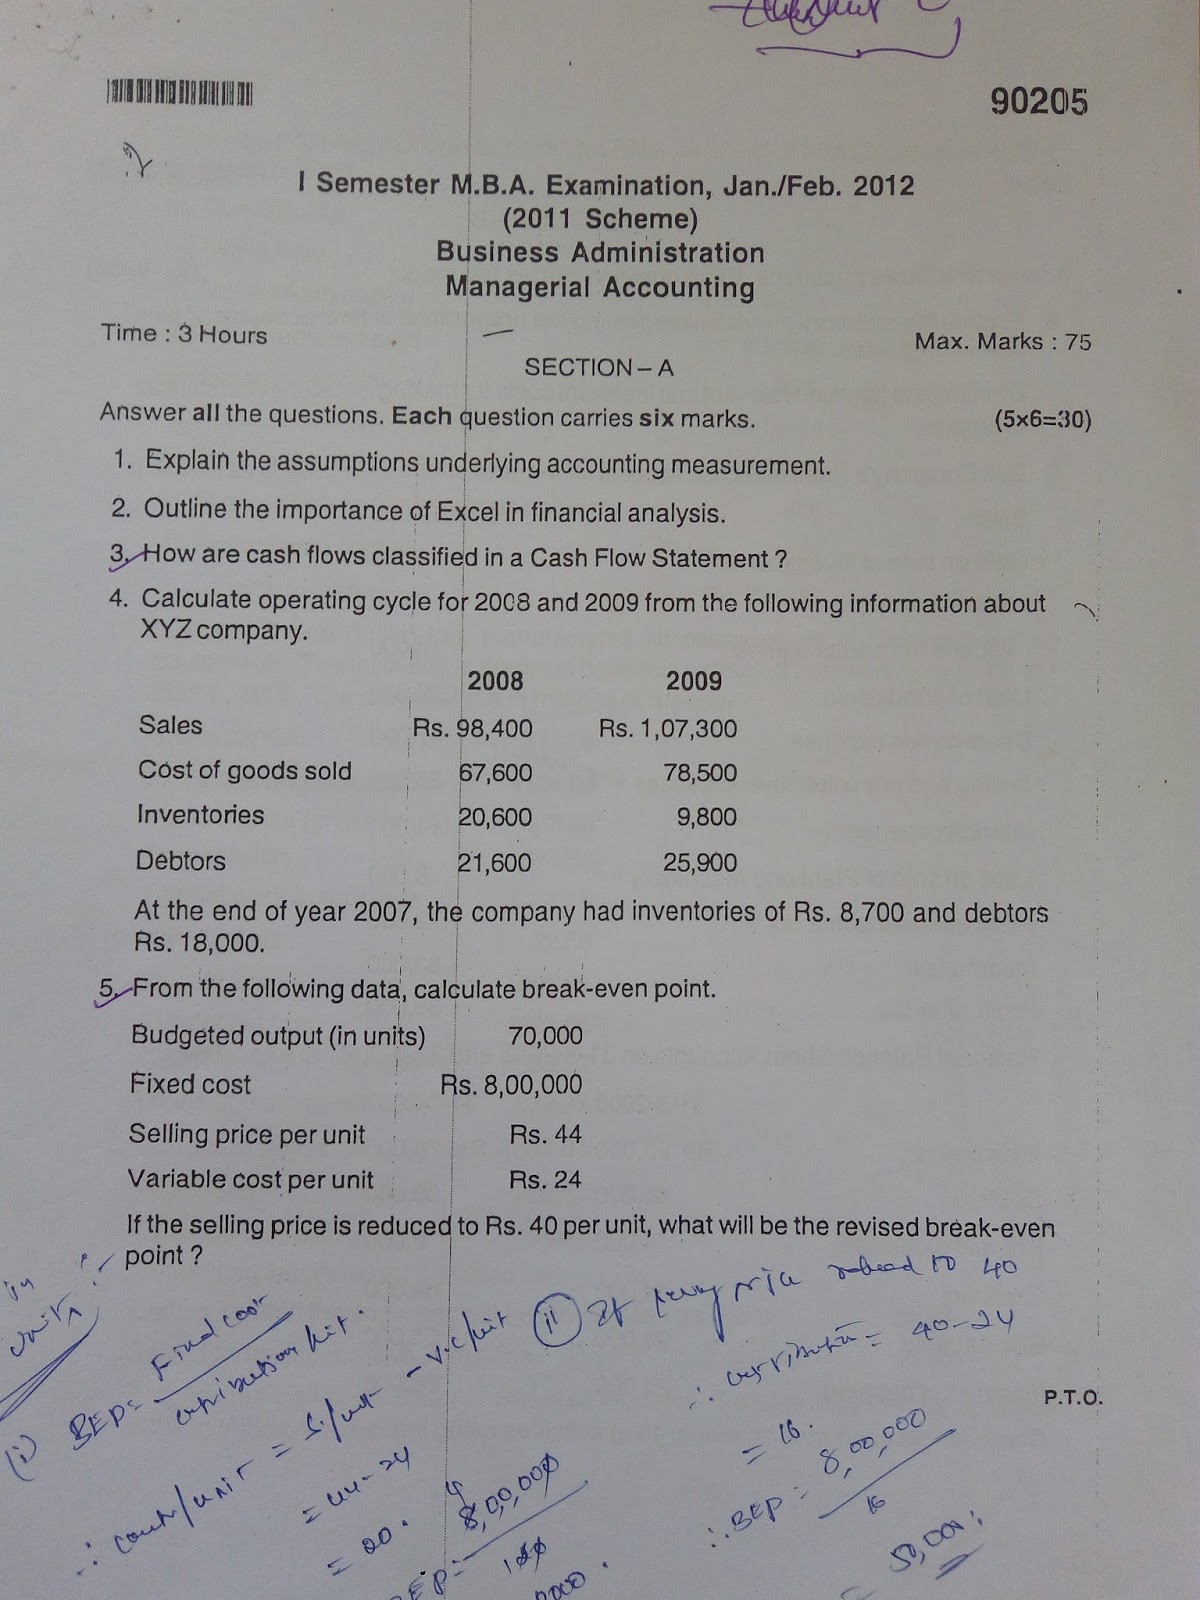 I SEM MANAGERIAL ACCOUNTING QUESTION PAPERS